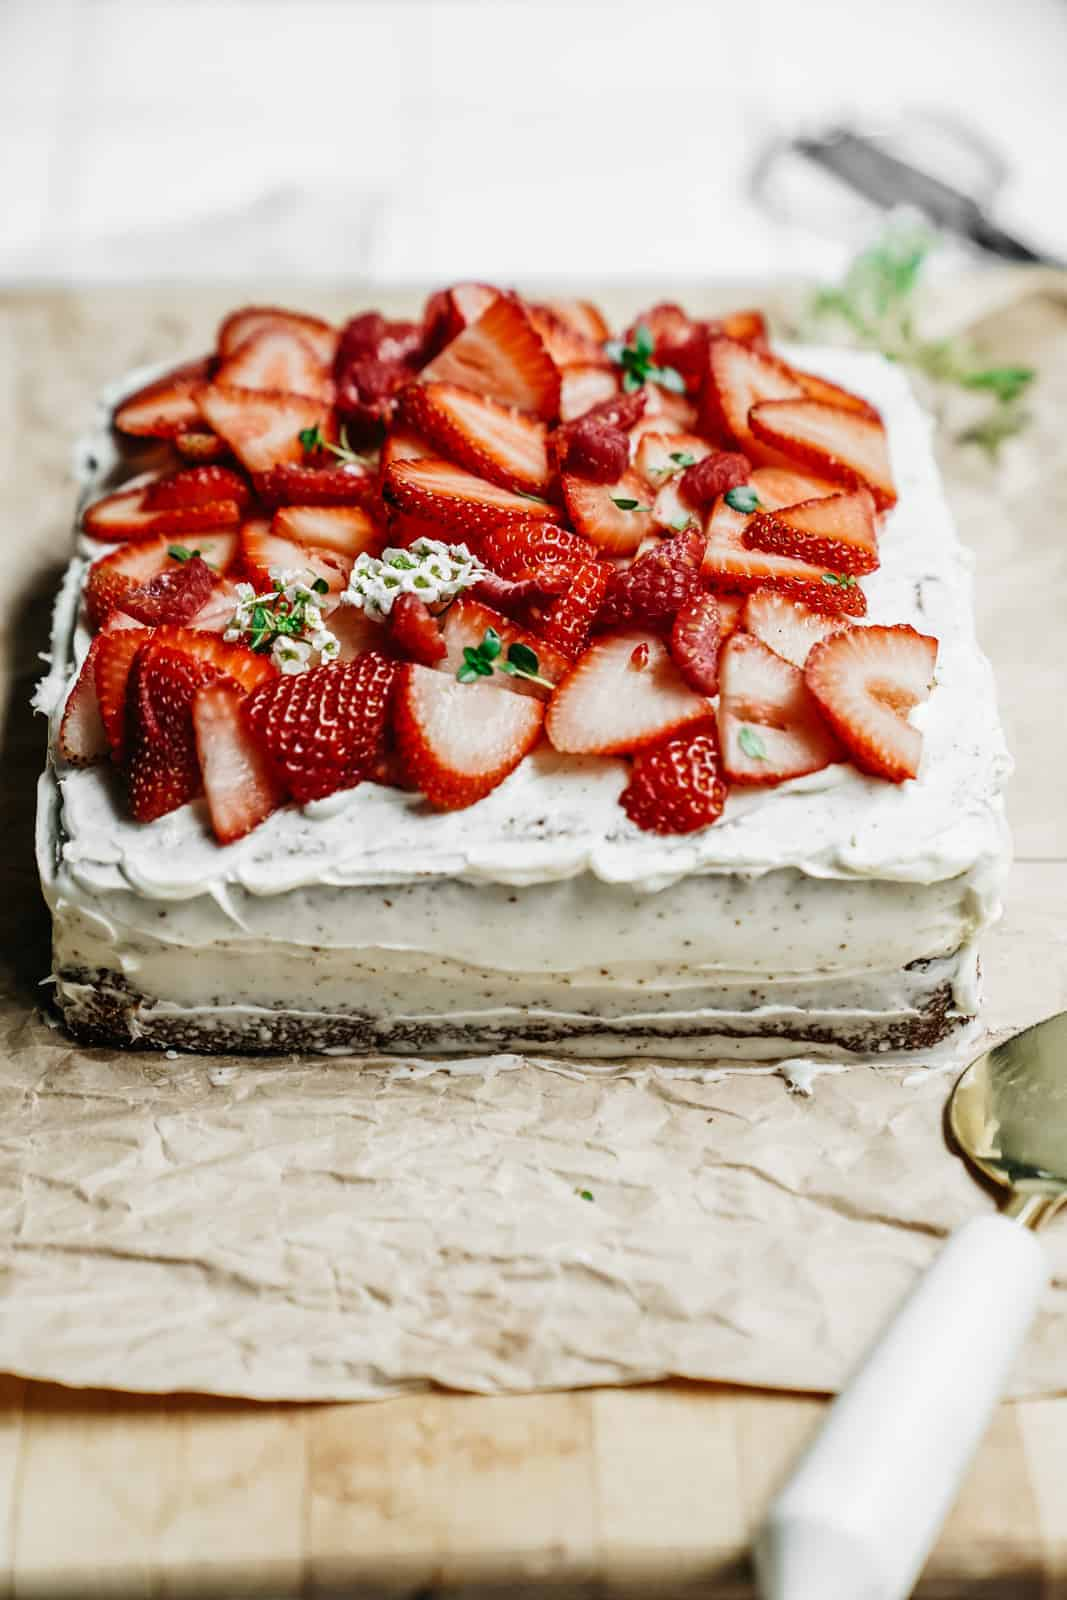 Yummy spring Vanilla Honey Cake sitting on a cutting board with fresh strawberries sliced on top.